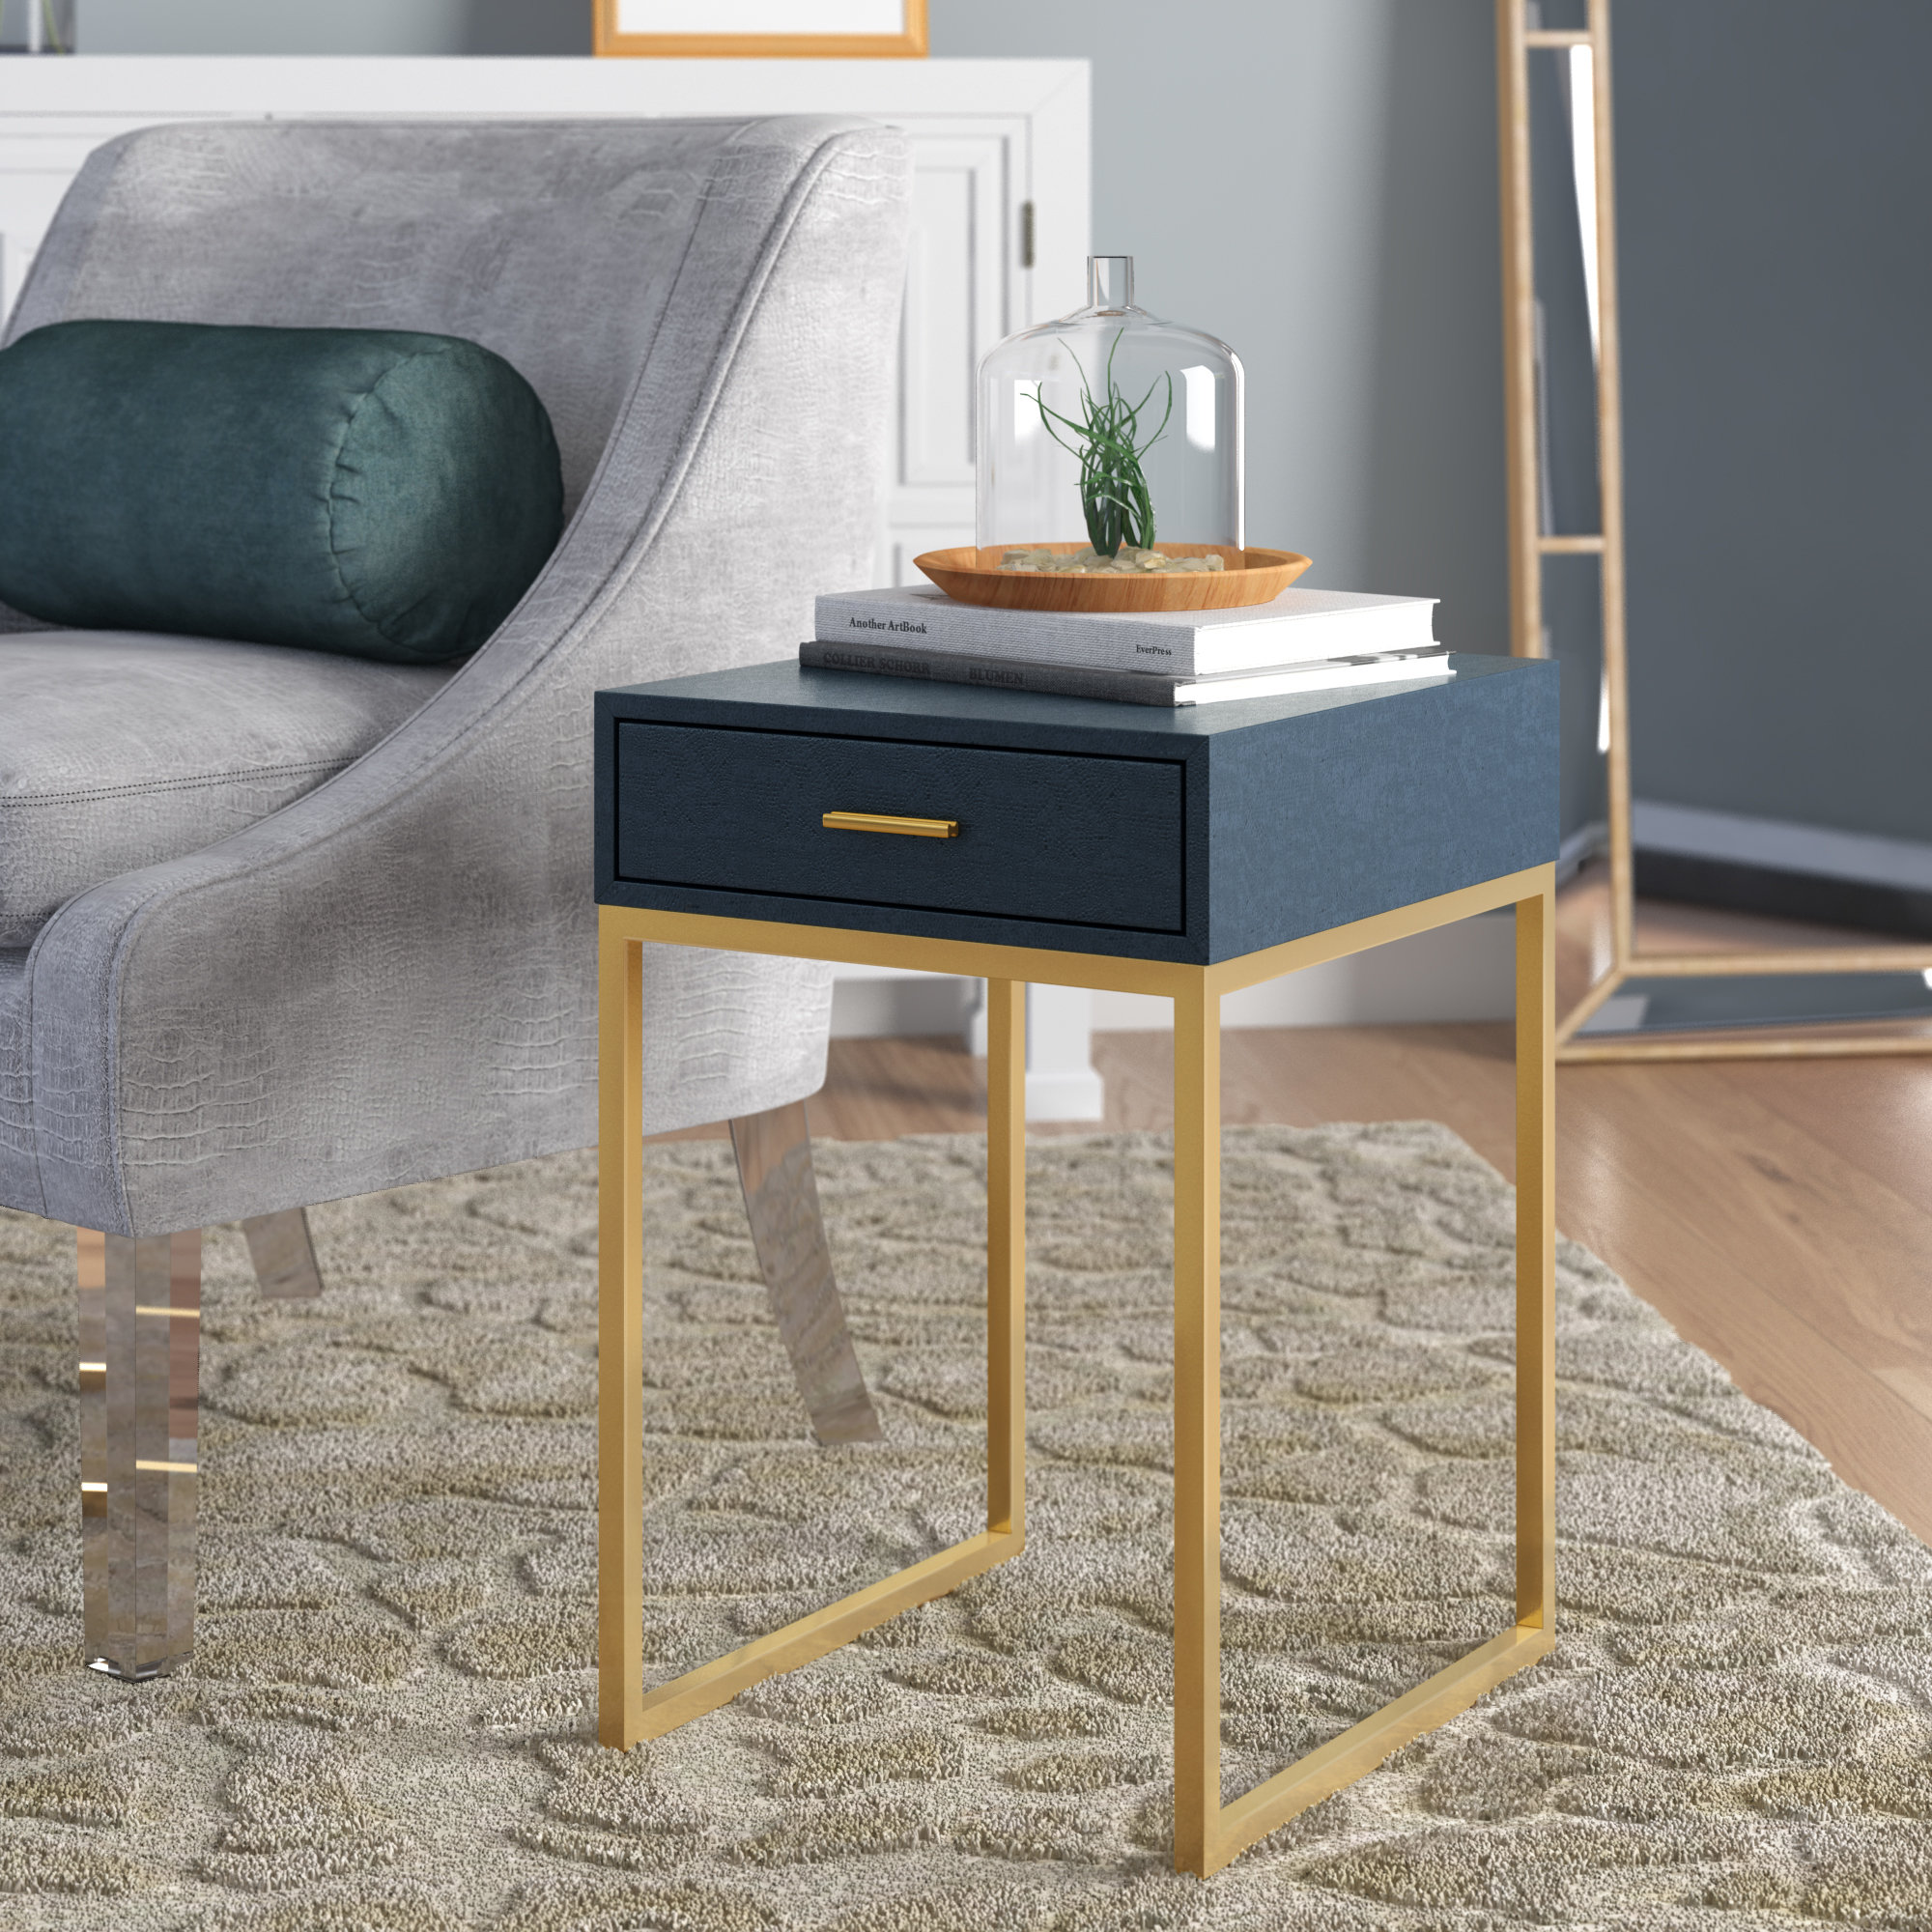 willa arlo interiors kylin end table with storage reviews accent black room essentials tro lamps tiered metal pier one porch furniture high small marble coffee skinny console ikea